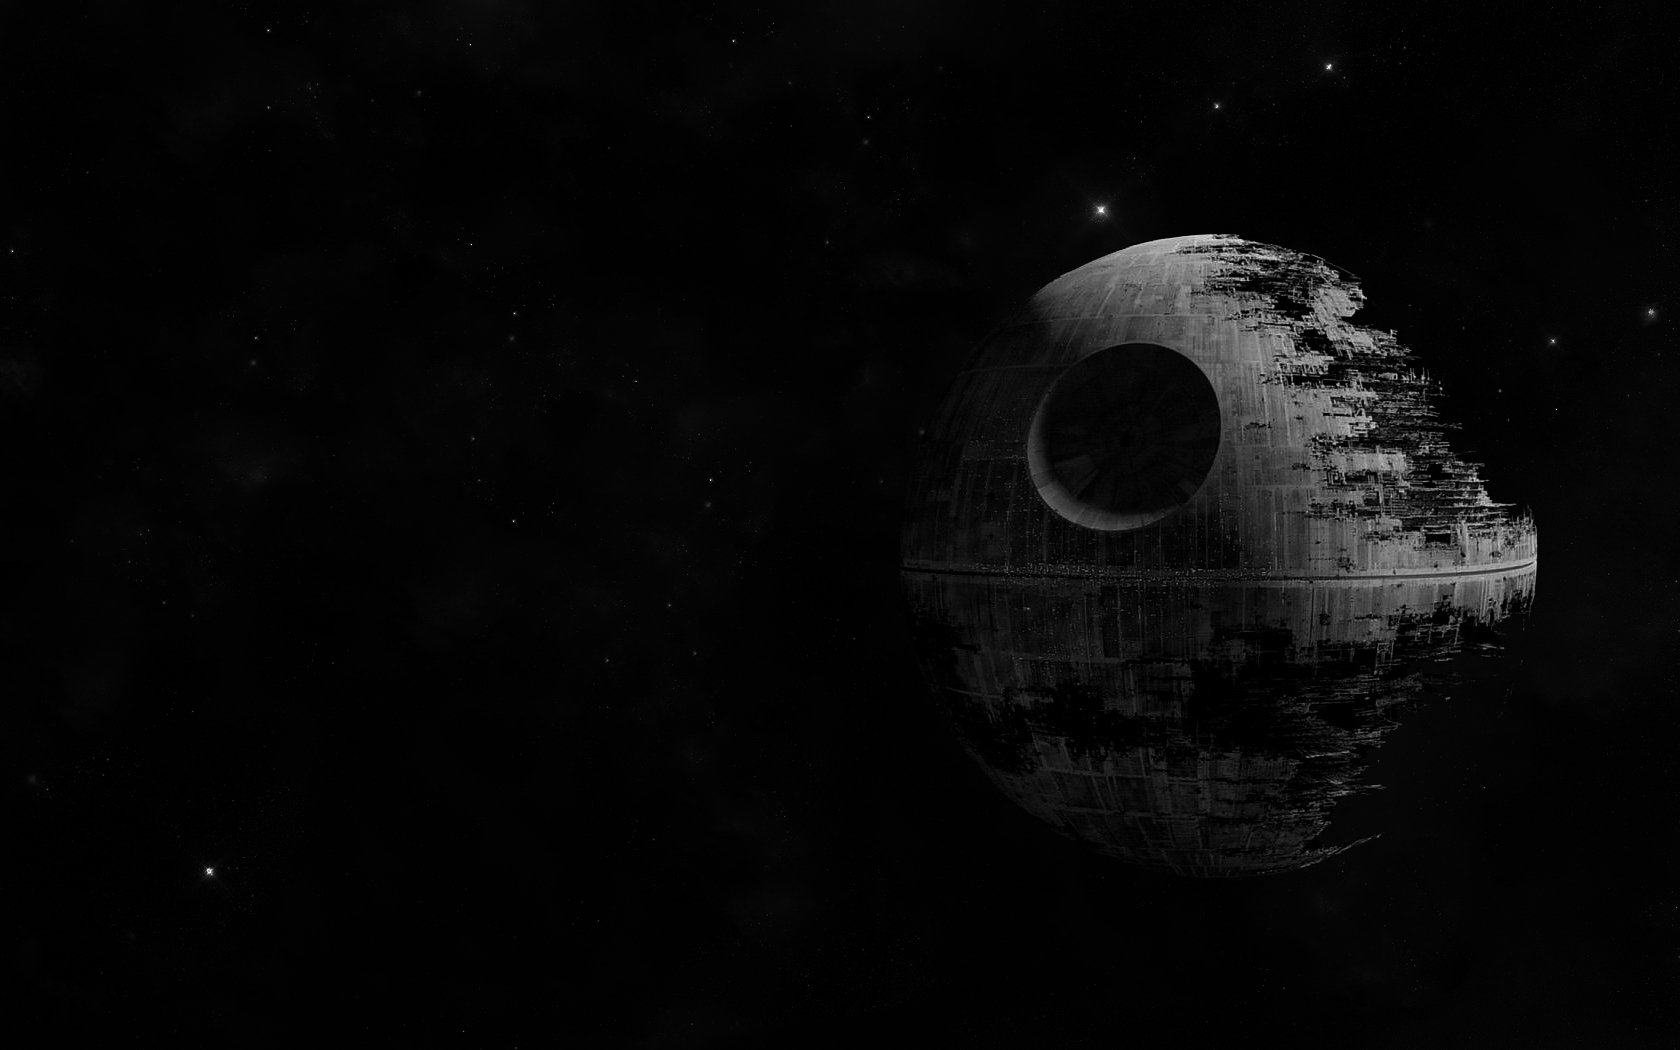 52 death star hd wallpapers | background images - wallpaper abyss